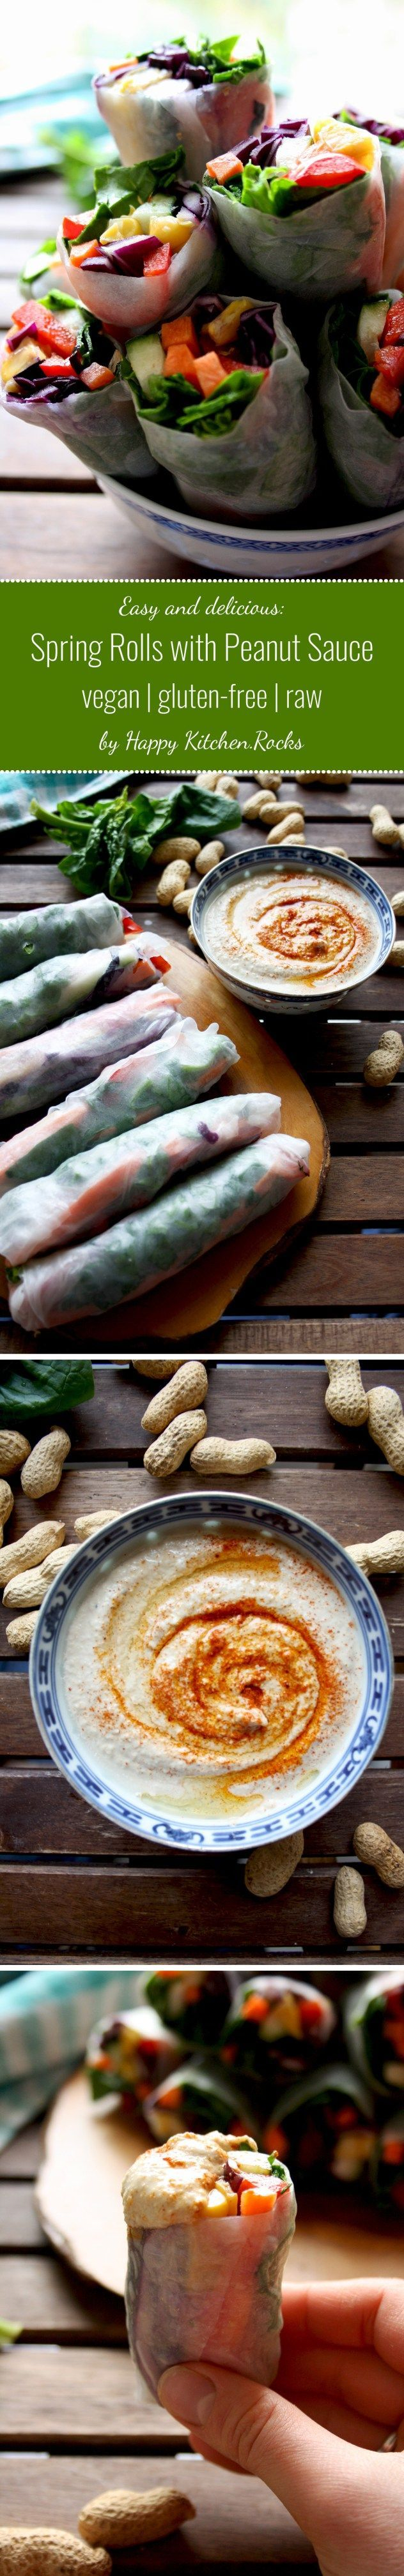 Easy Vegan Spring Rolls with Peanut Sauce: Satisfying and versatile snack loaded with veggies and dipped in delicious peanut sauce with ginger and garlic. Gluten-free, raw, low carb! #glutenfree #vegan #vegetarian #springrolls #rawvegan #raw #peanuts #vegetables #veganrecipes #healthyrecipes #recipes #recipe #food